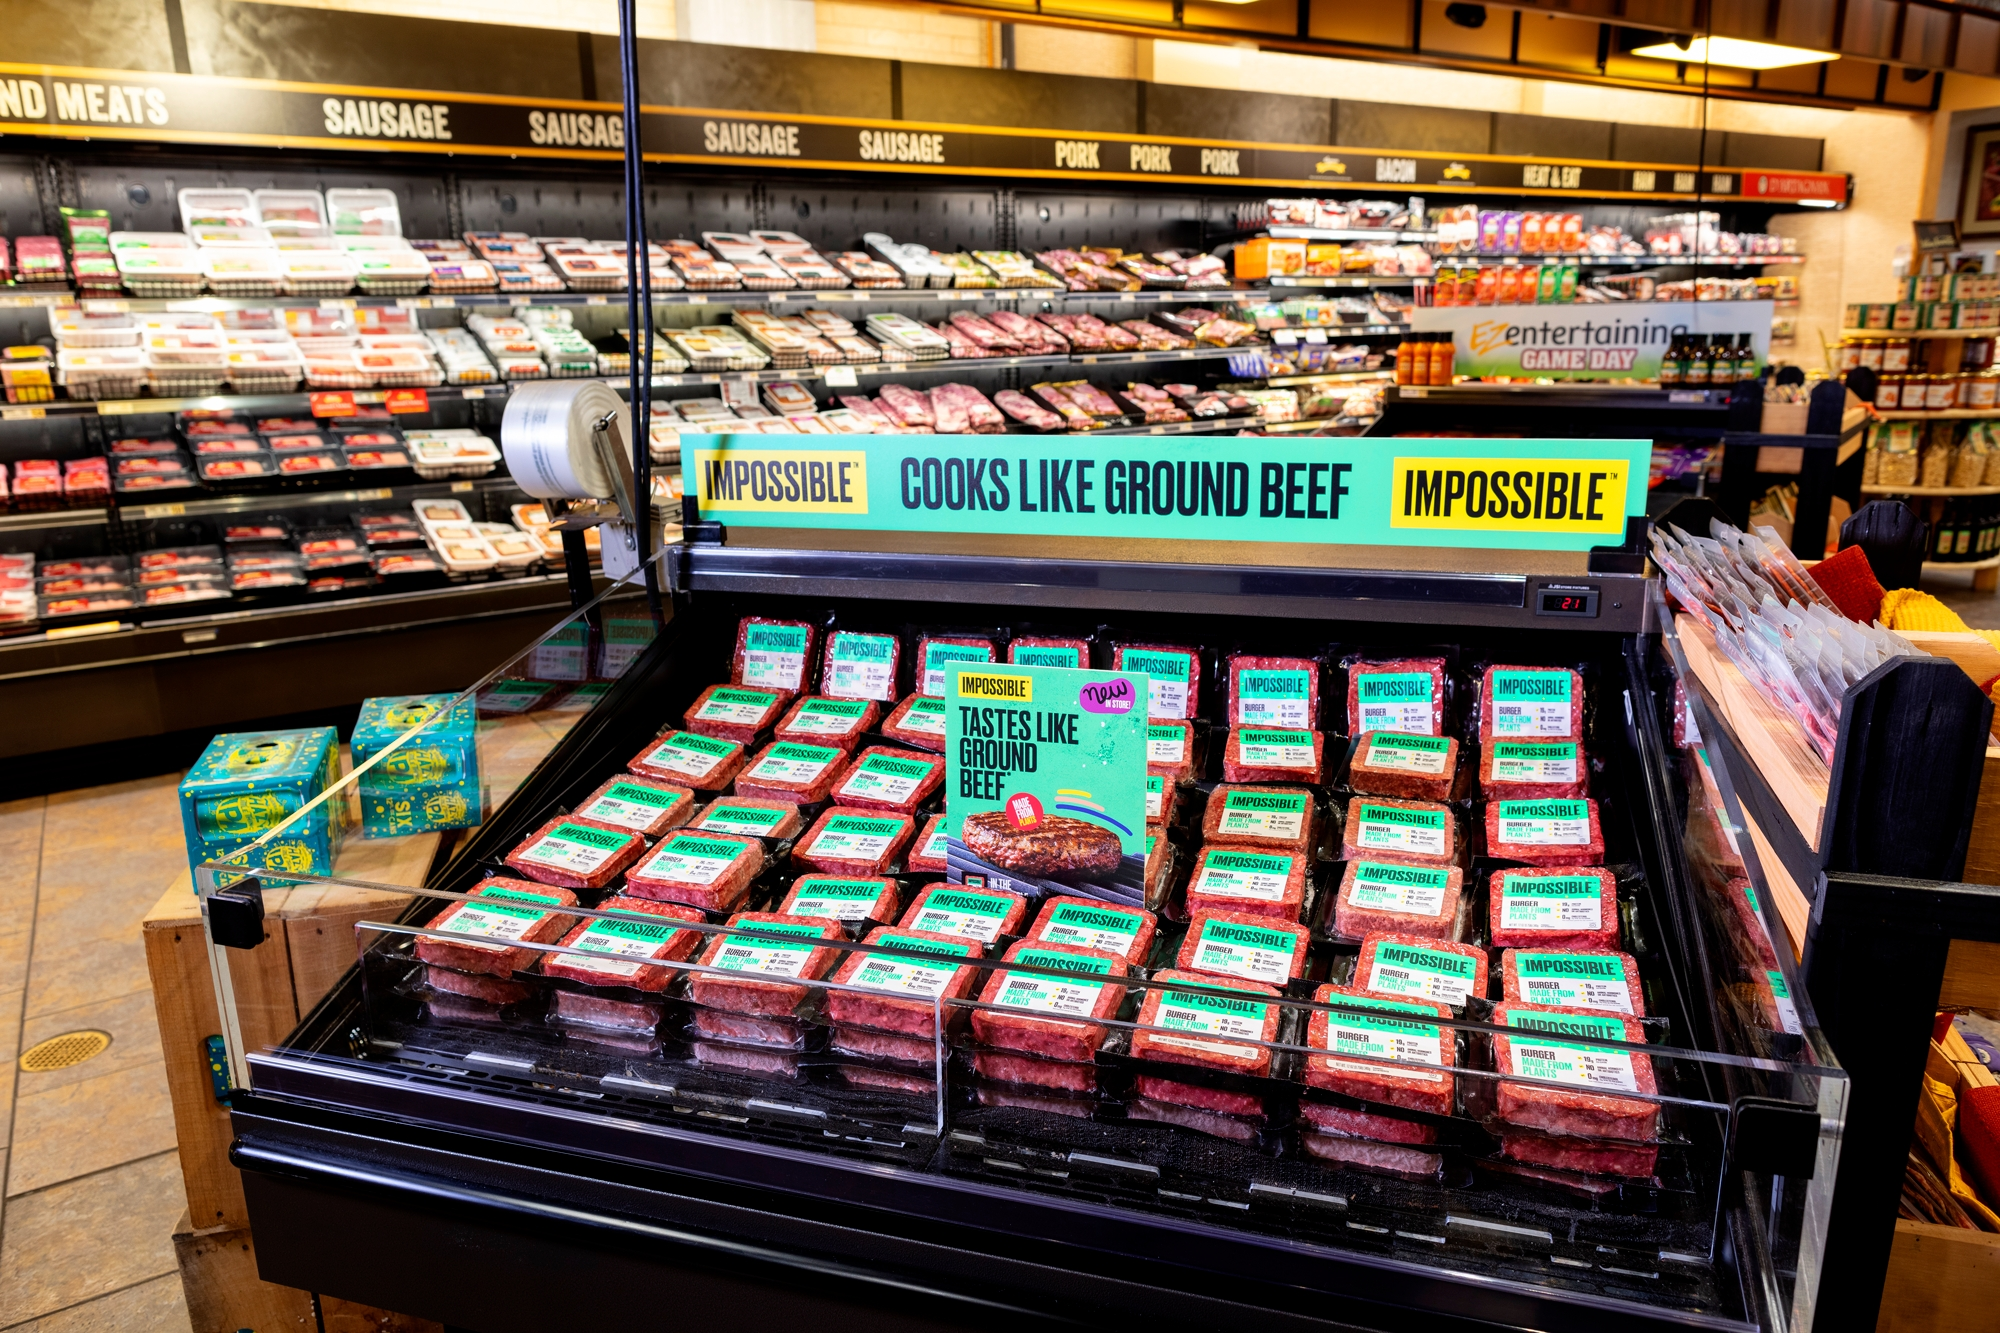 Impossible Foods Makes East Coast Grocery Store Debut Business Wire